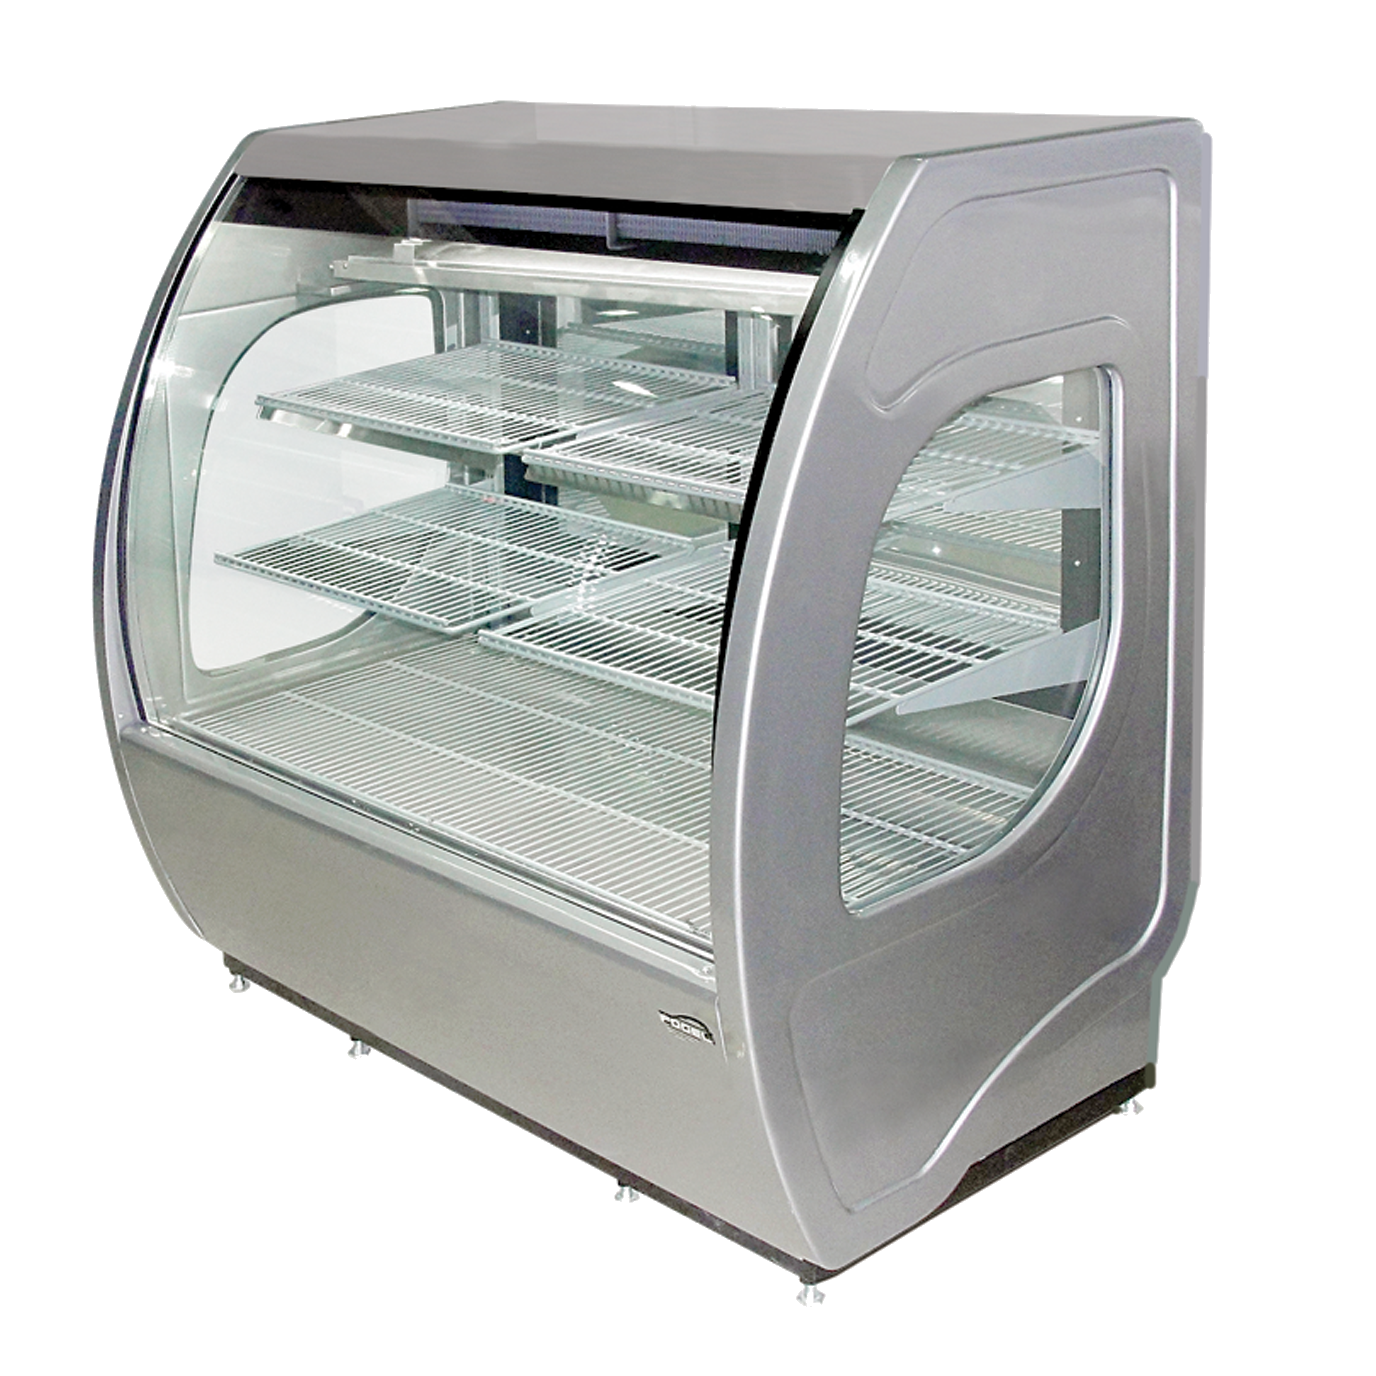 Fogel USA ELITE-6-PF-G display case, refrigerated bakery